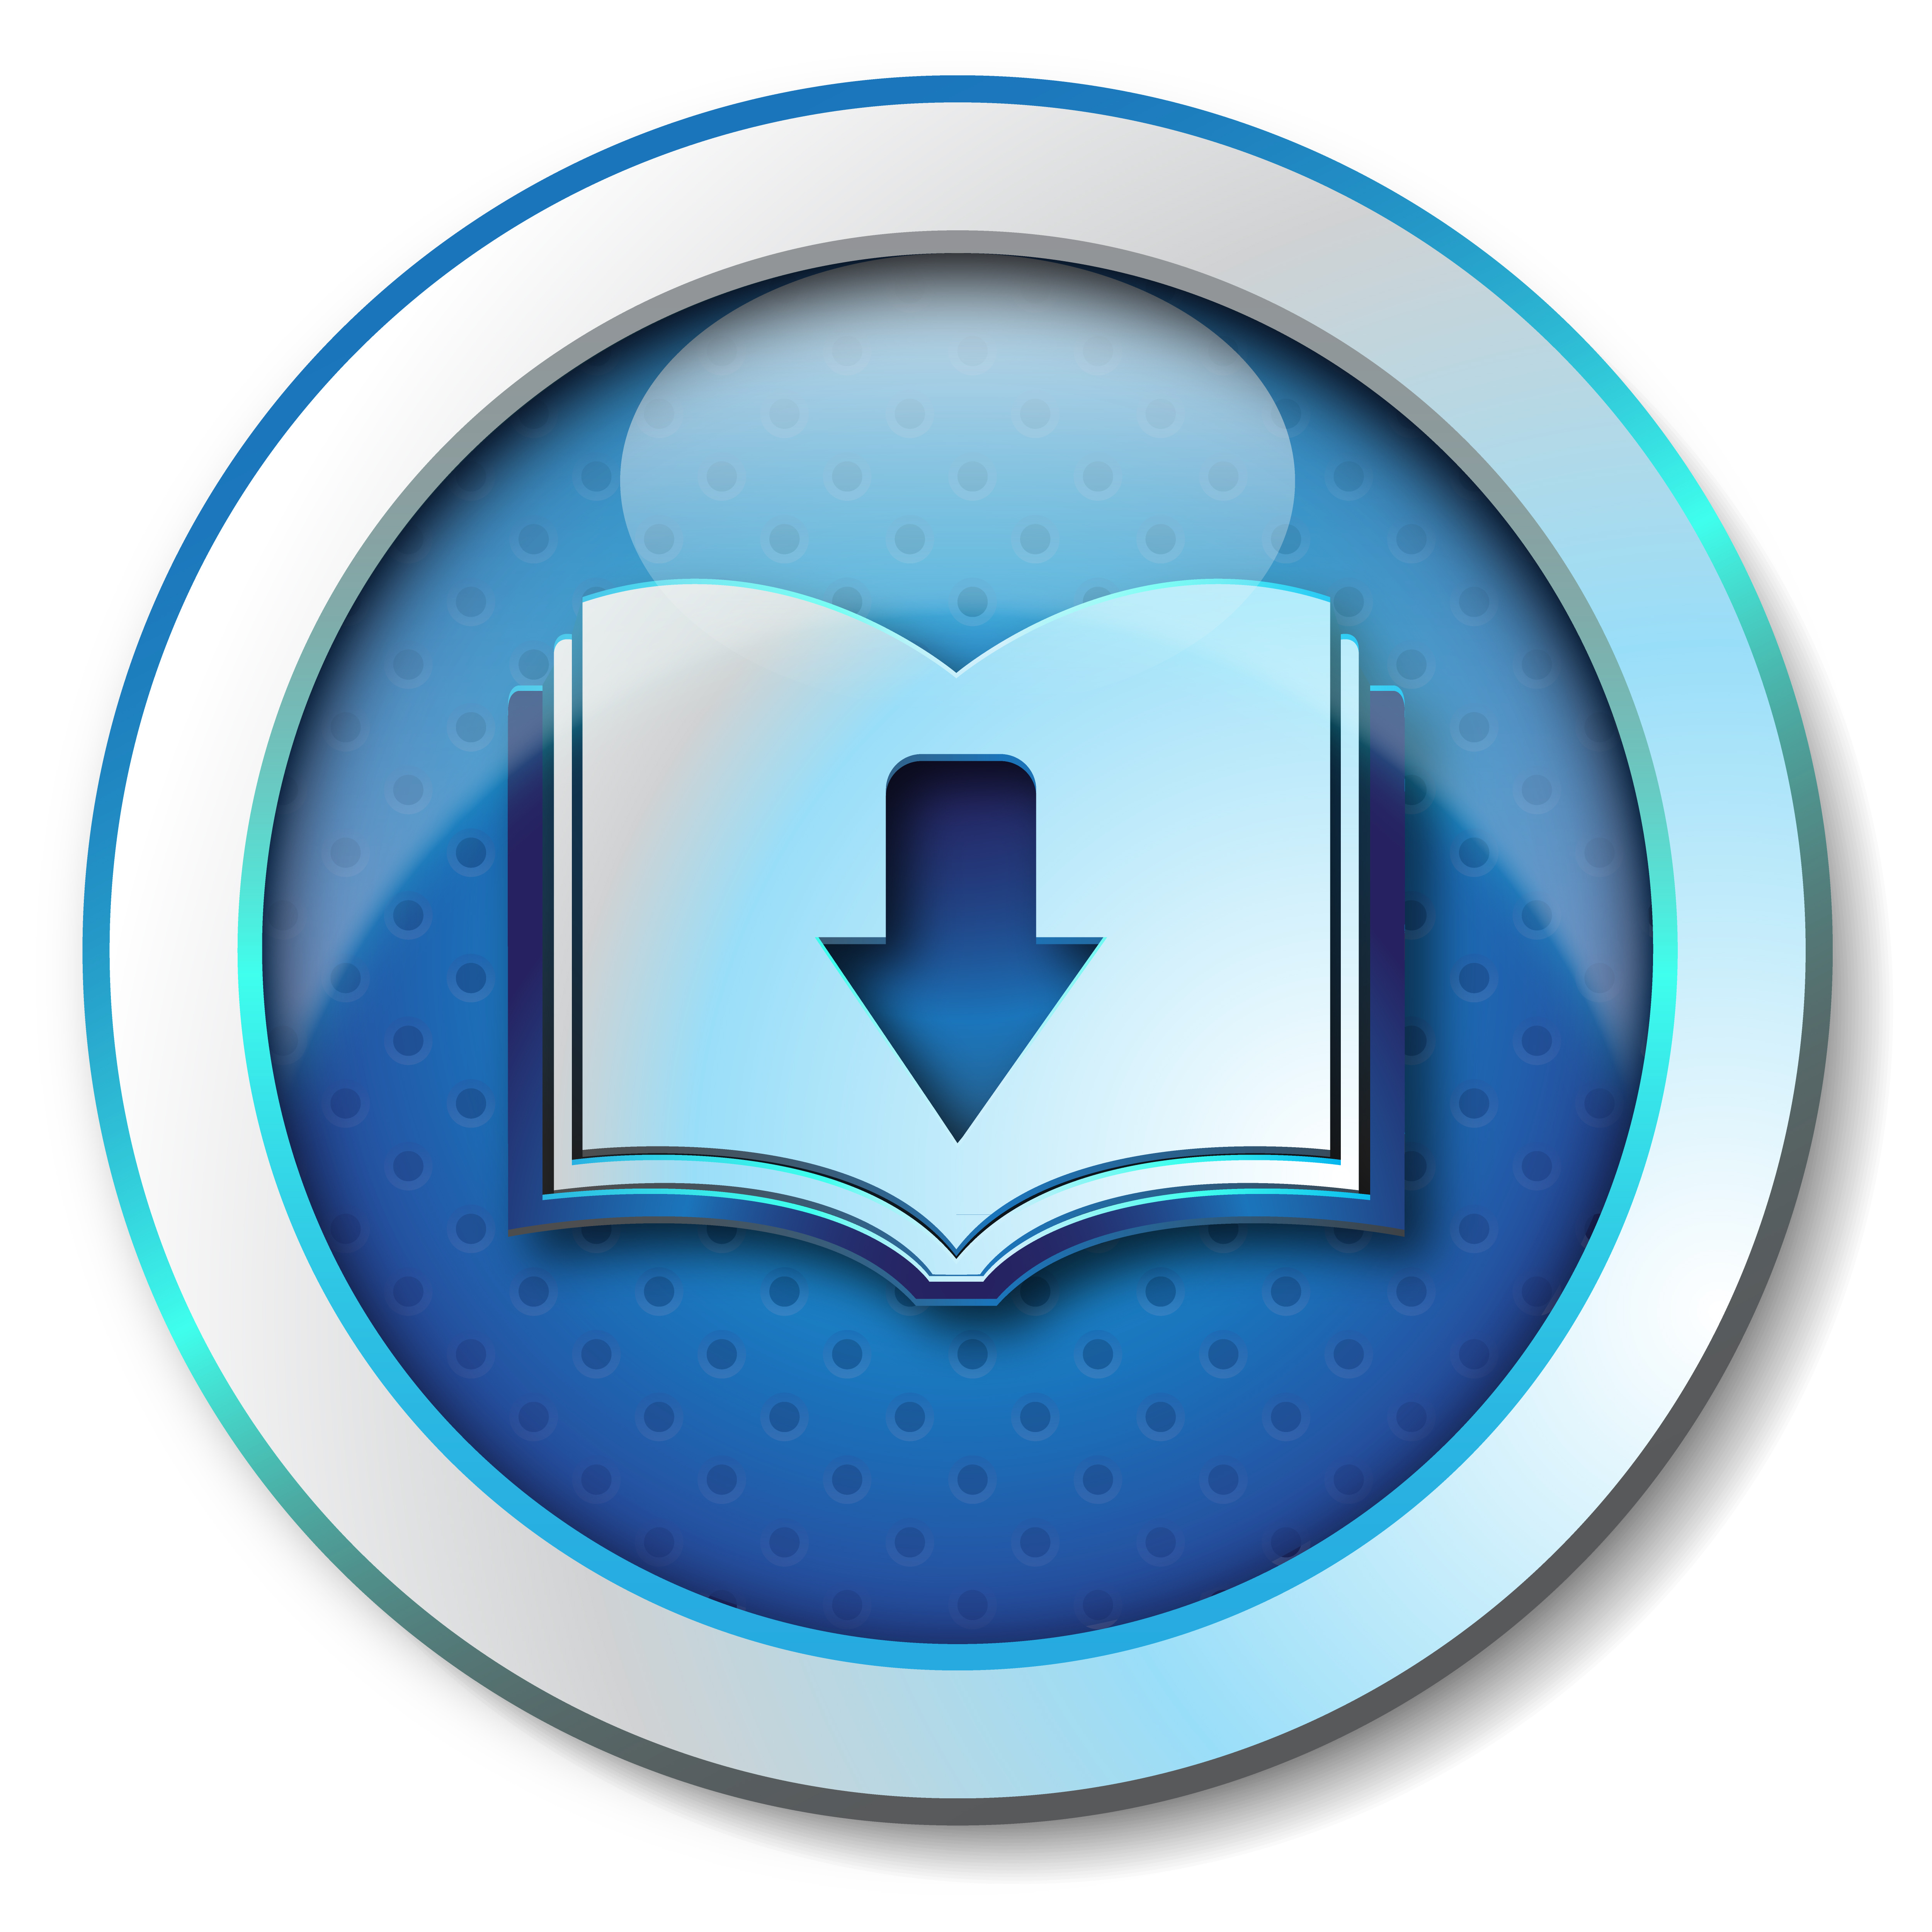 Free_Book_Download_blue_arrow